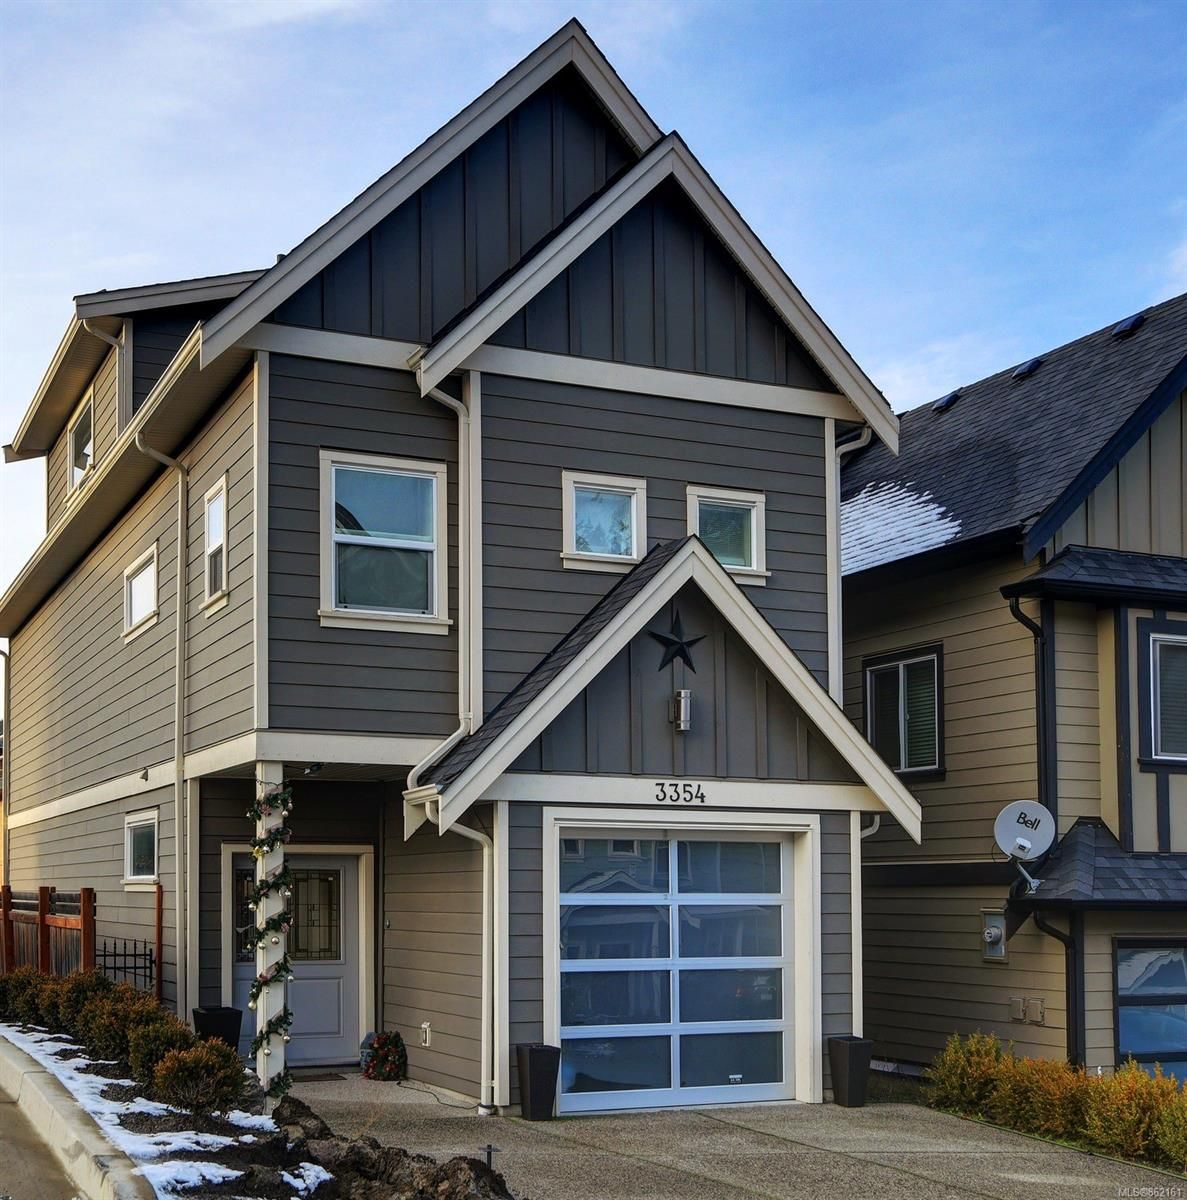 Main Photo: 3354 Turnstone Dr in : La Happy Valley House for sale (Langford)  : MLS®# 862161